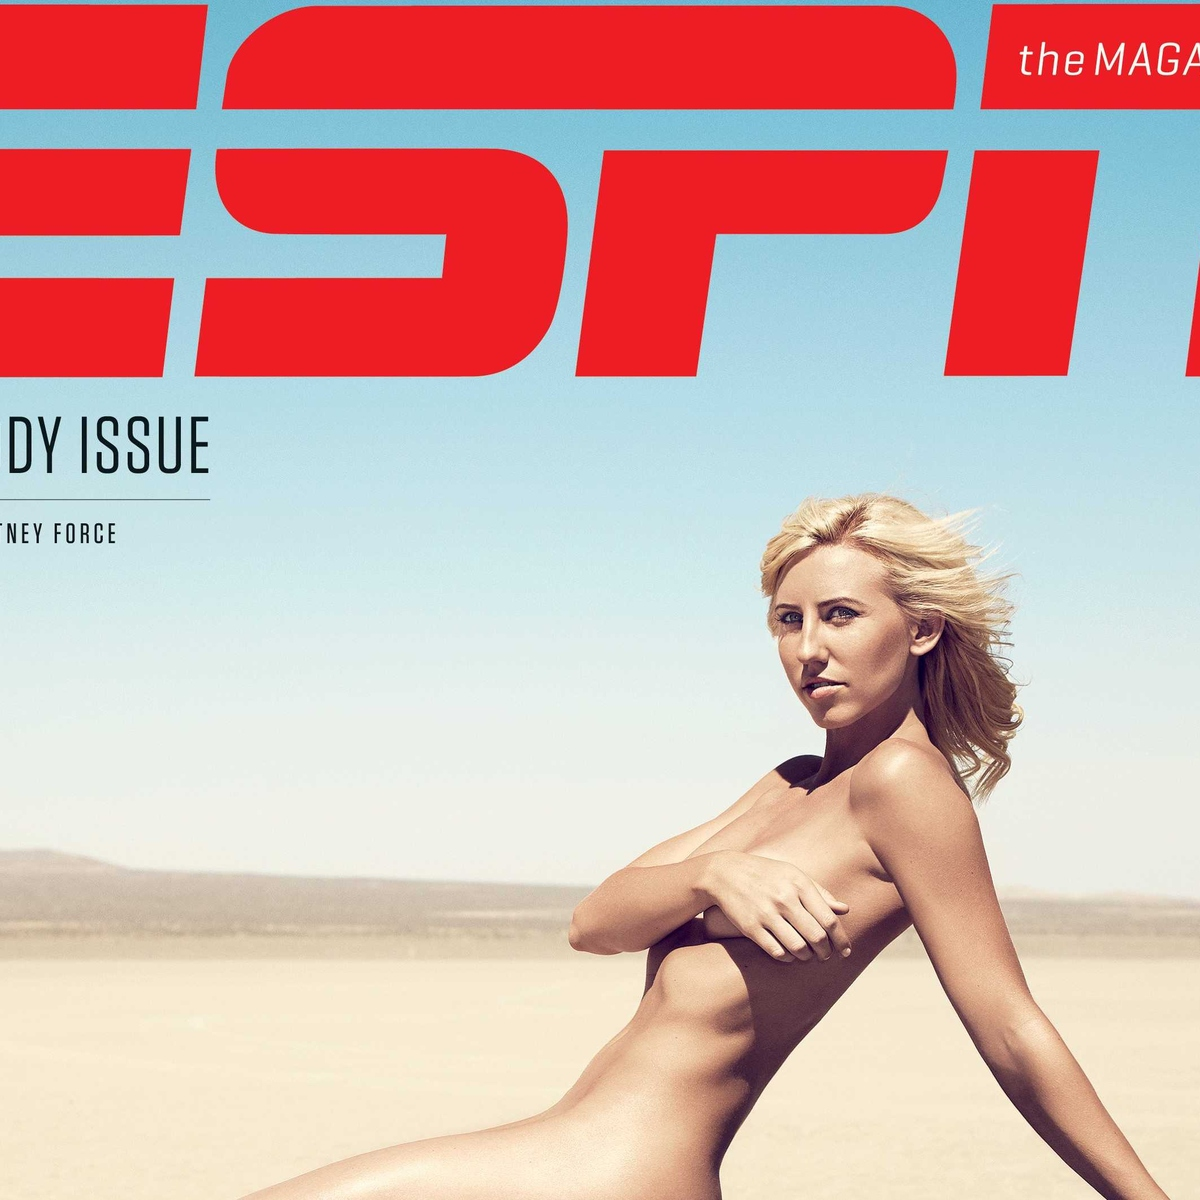 The Media's Sexualization of Female Athletes: A Bad Call for